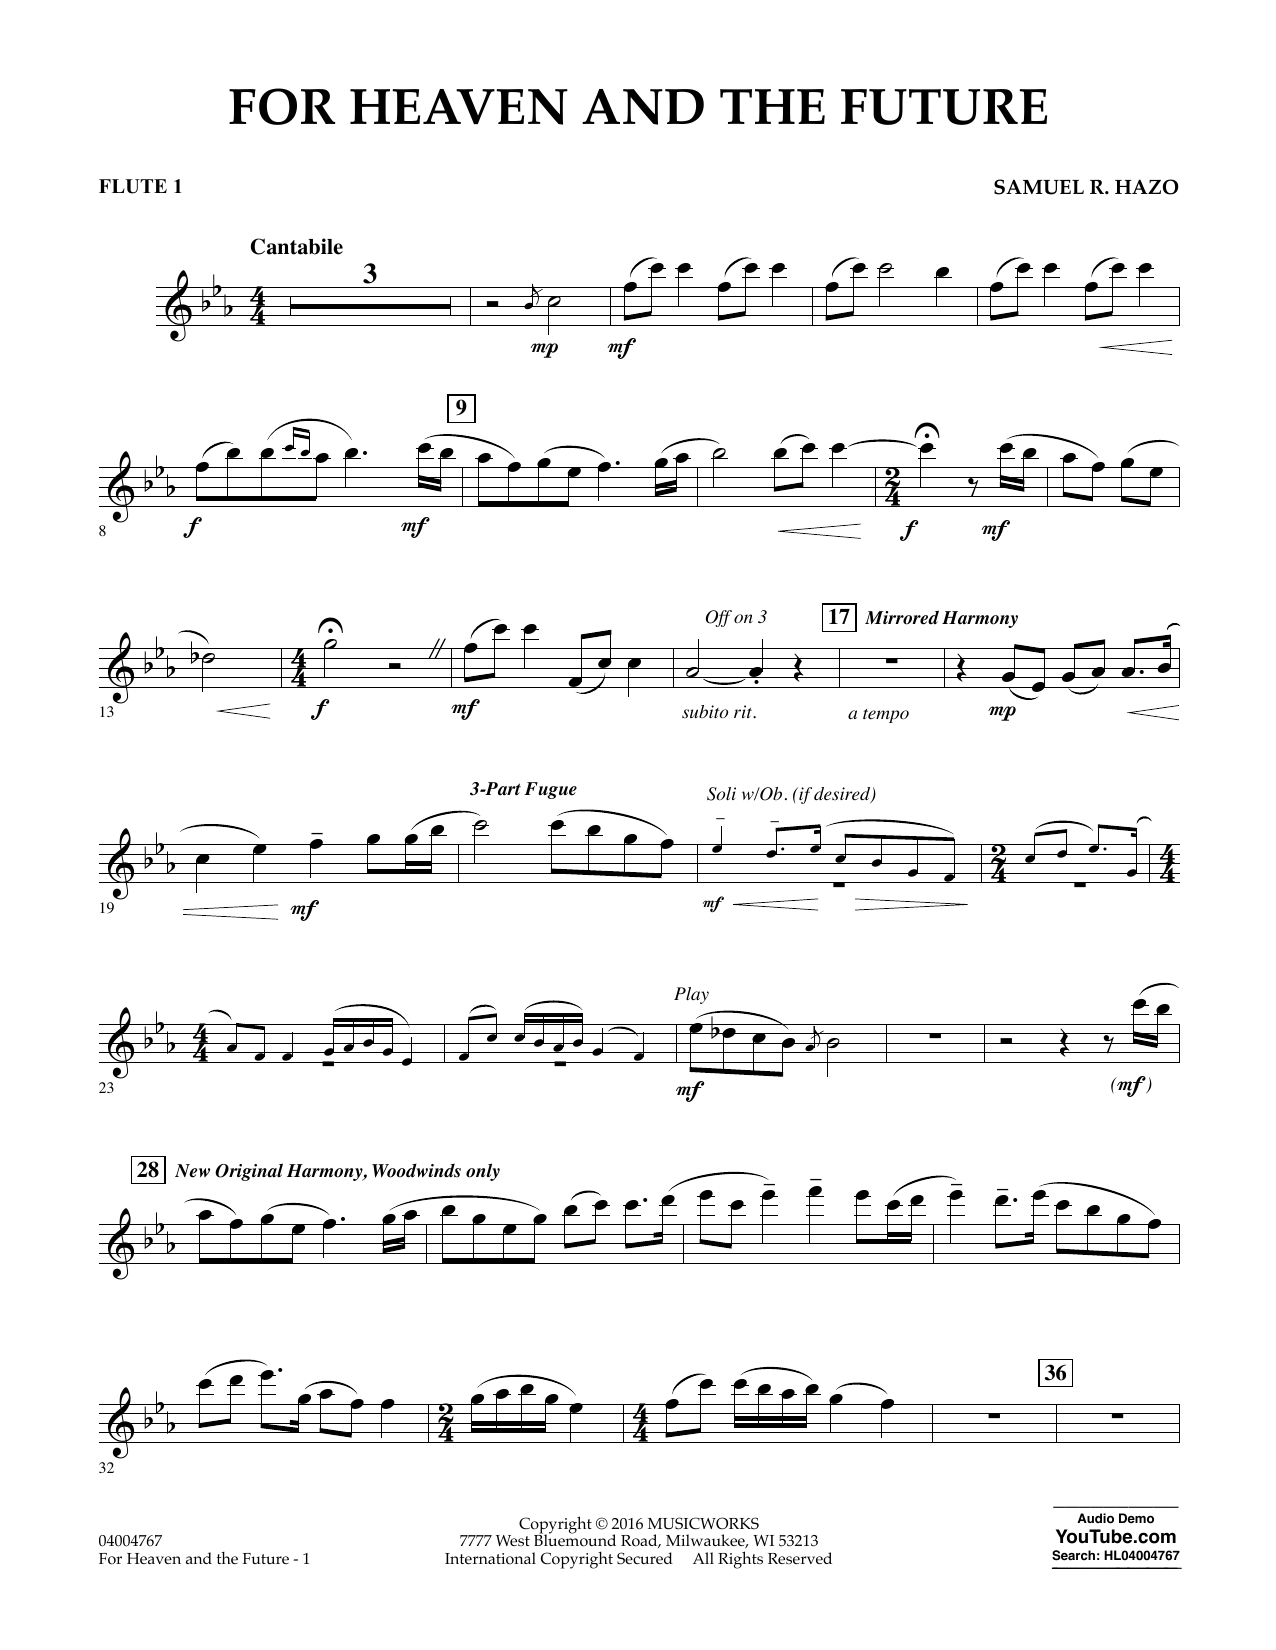 For Heaven and the Future - Flute 1 (Concert Band)